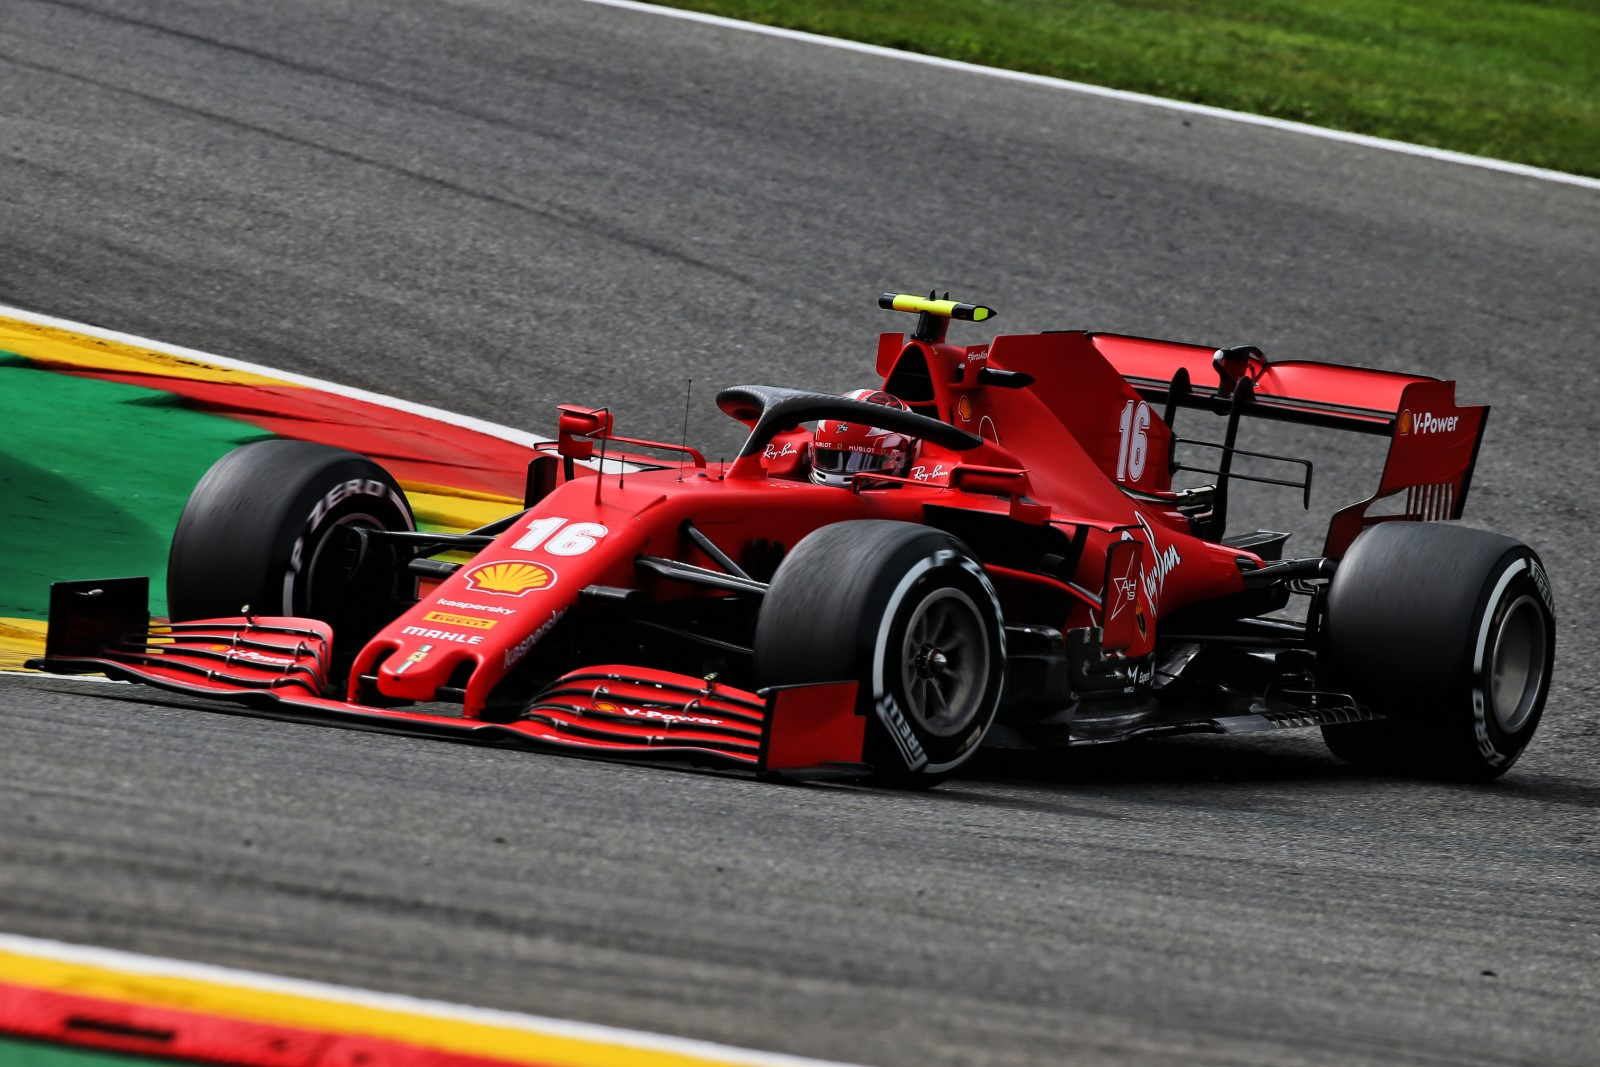 Vettel 'very open' with Ferrari despite impending exit